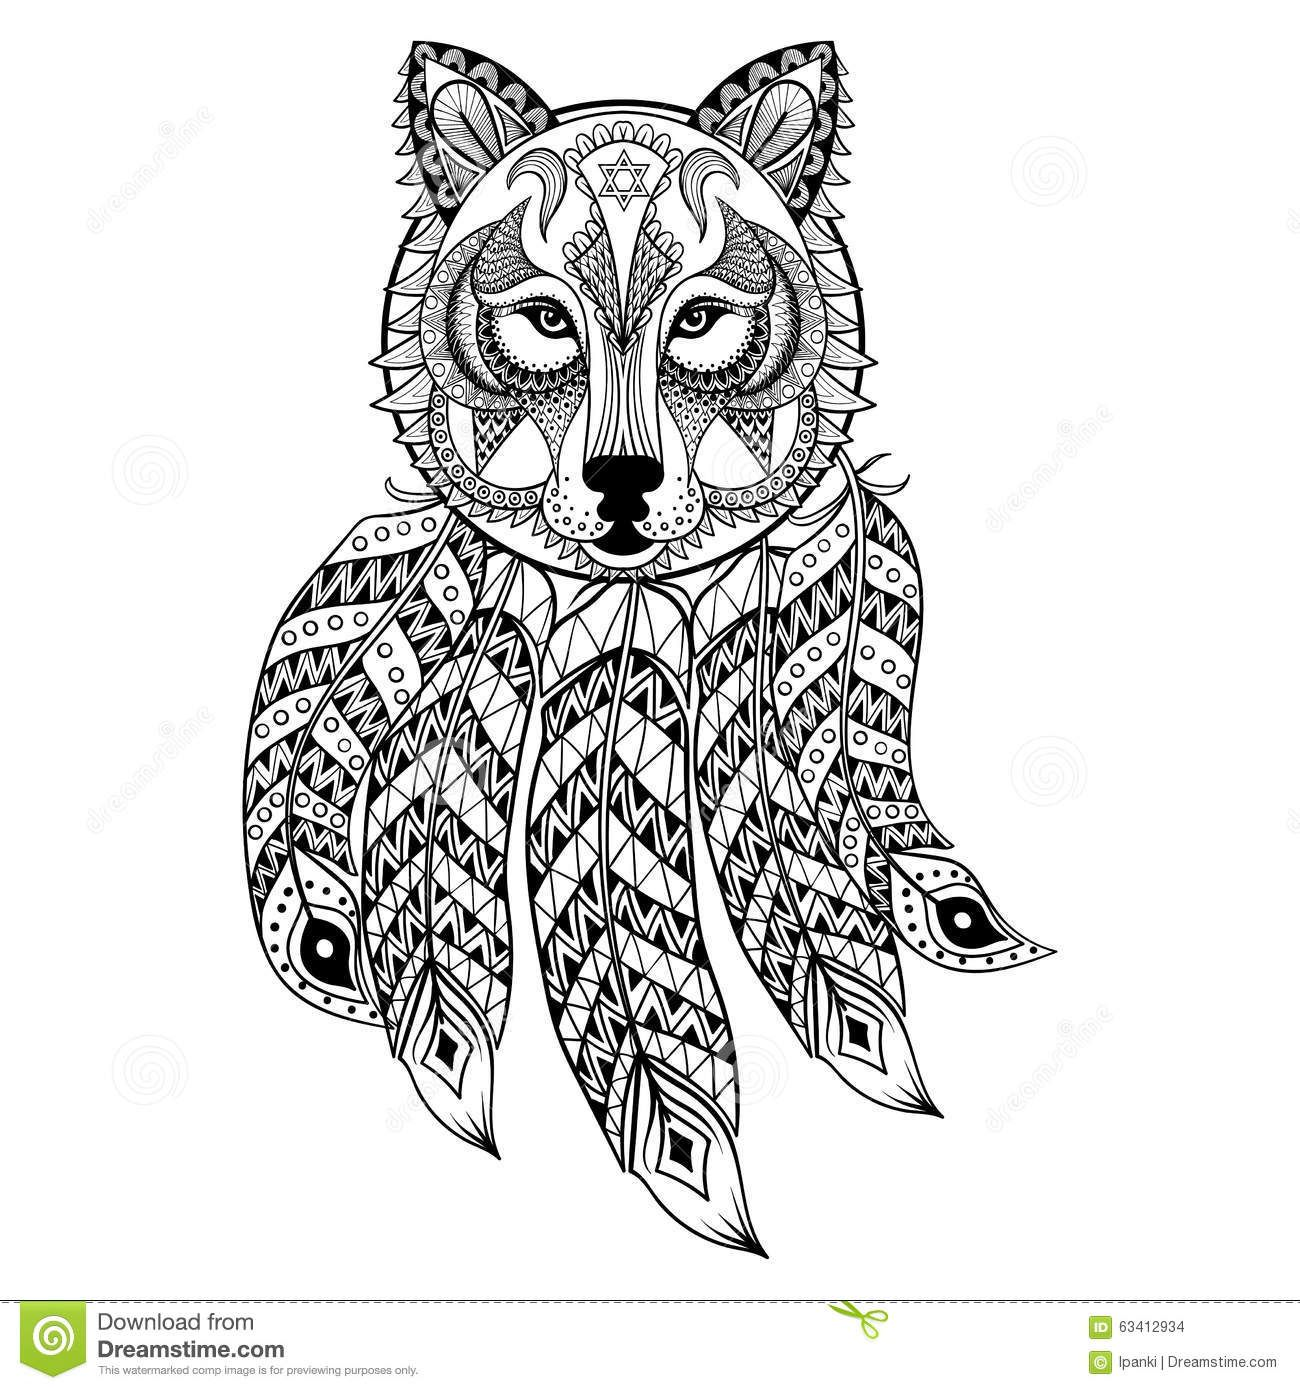 Wolf mandala coloring pages - Wolf Dream Catcher Coloring Pages Adult Pages Dream Catcher